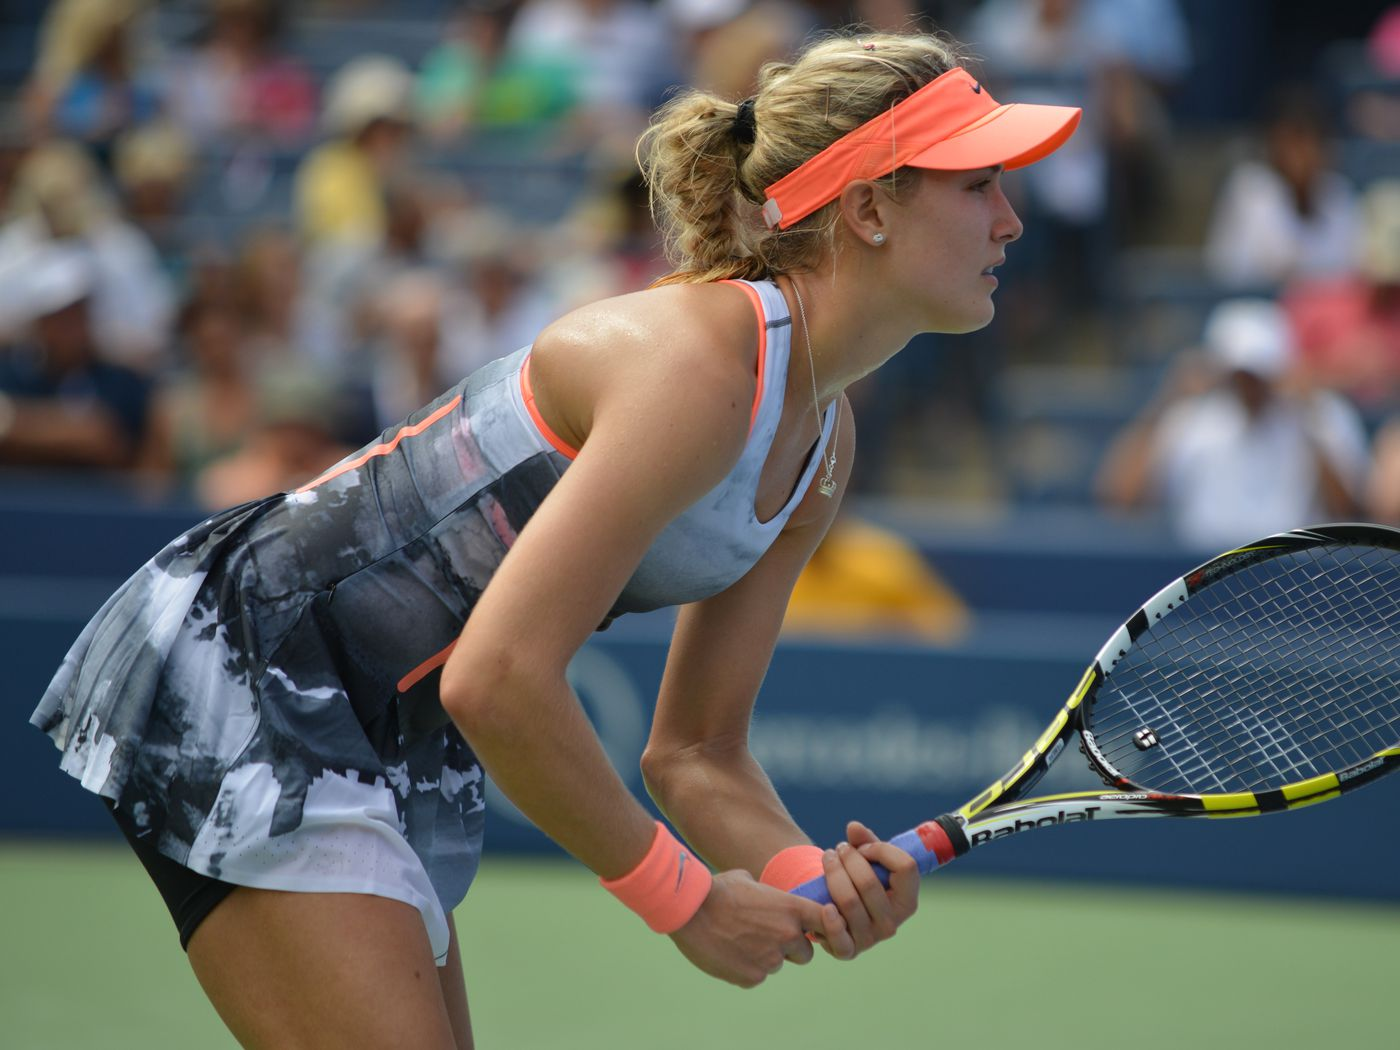 Wonderful Eugenie Bouchard Still For Waiting Tennies Ball Laptop Download Hd Background Pictures Free